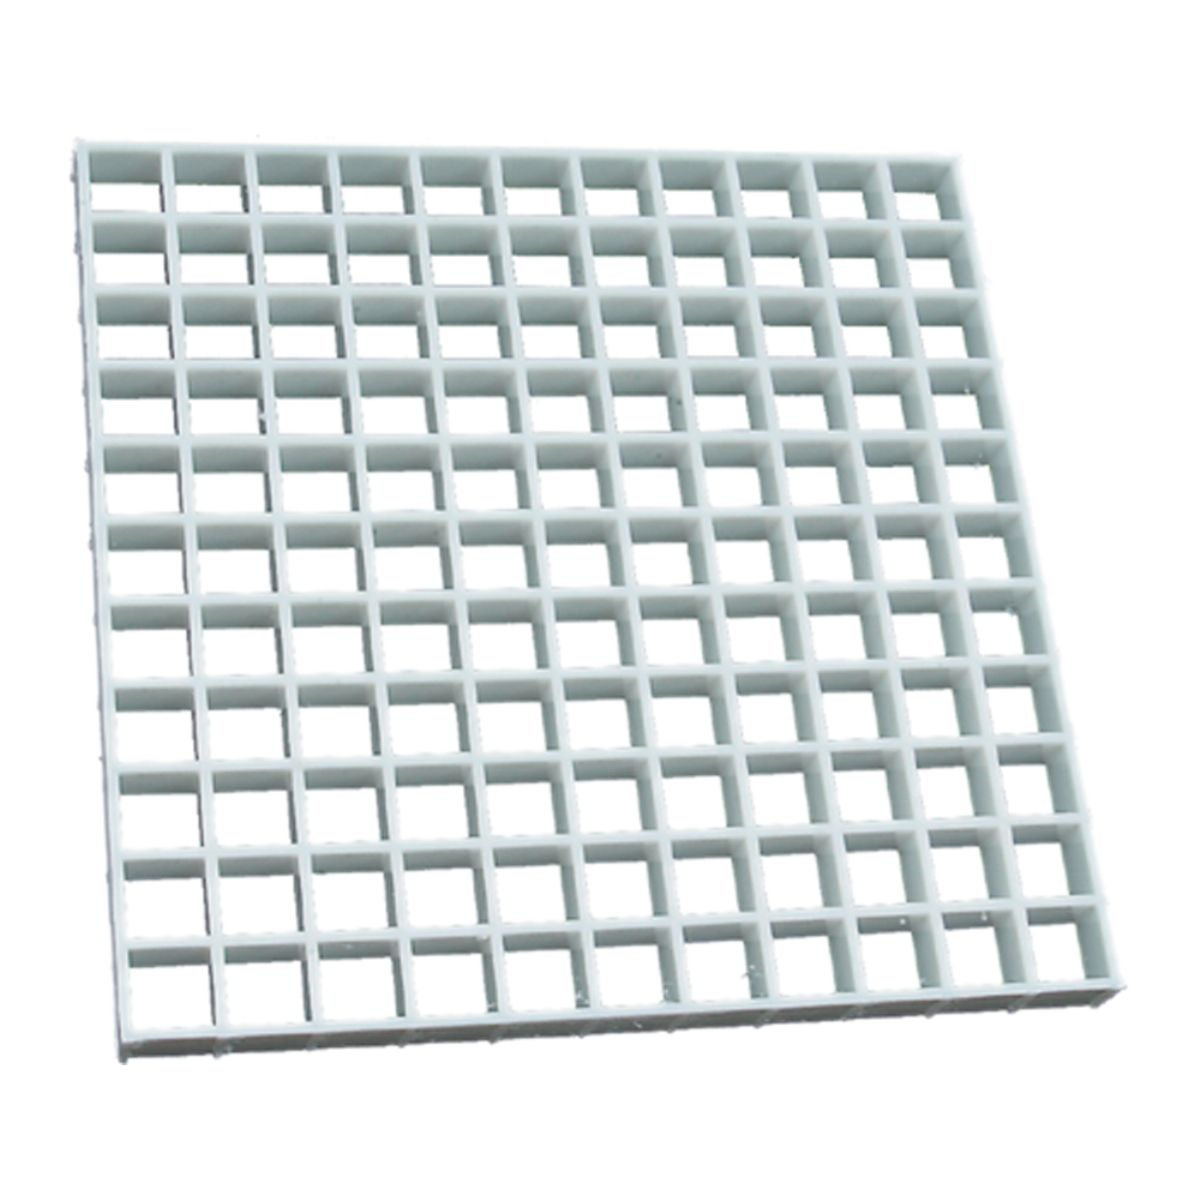 Egg crate air return diffuser 24 x 24 x 12 product highlights doublecrazyfo Images